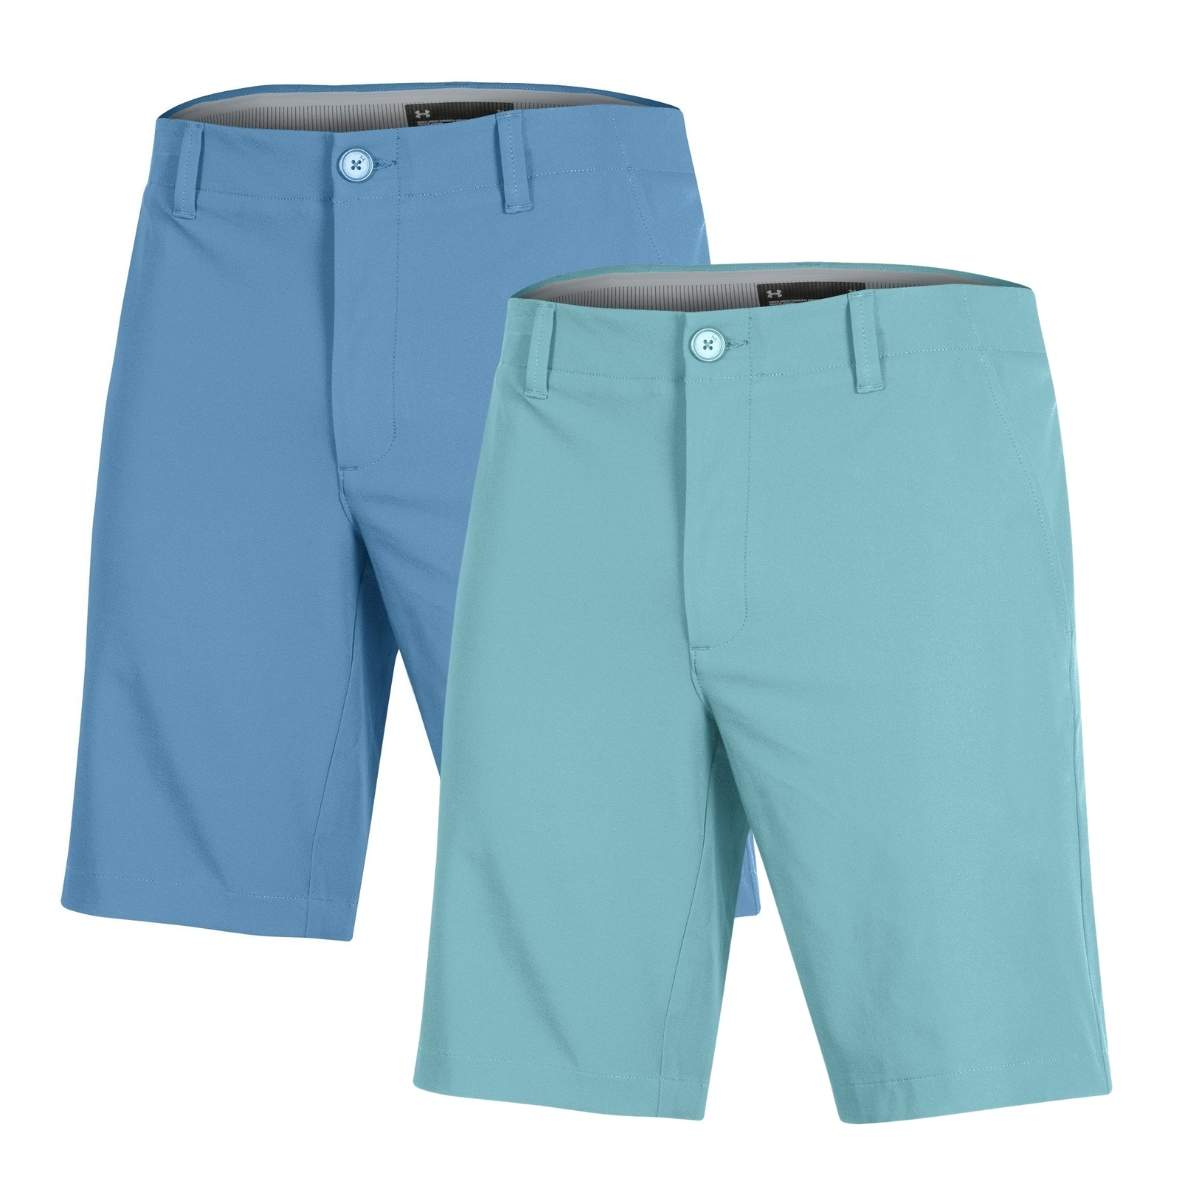 Under Armour Men's Iso-Chill Short